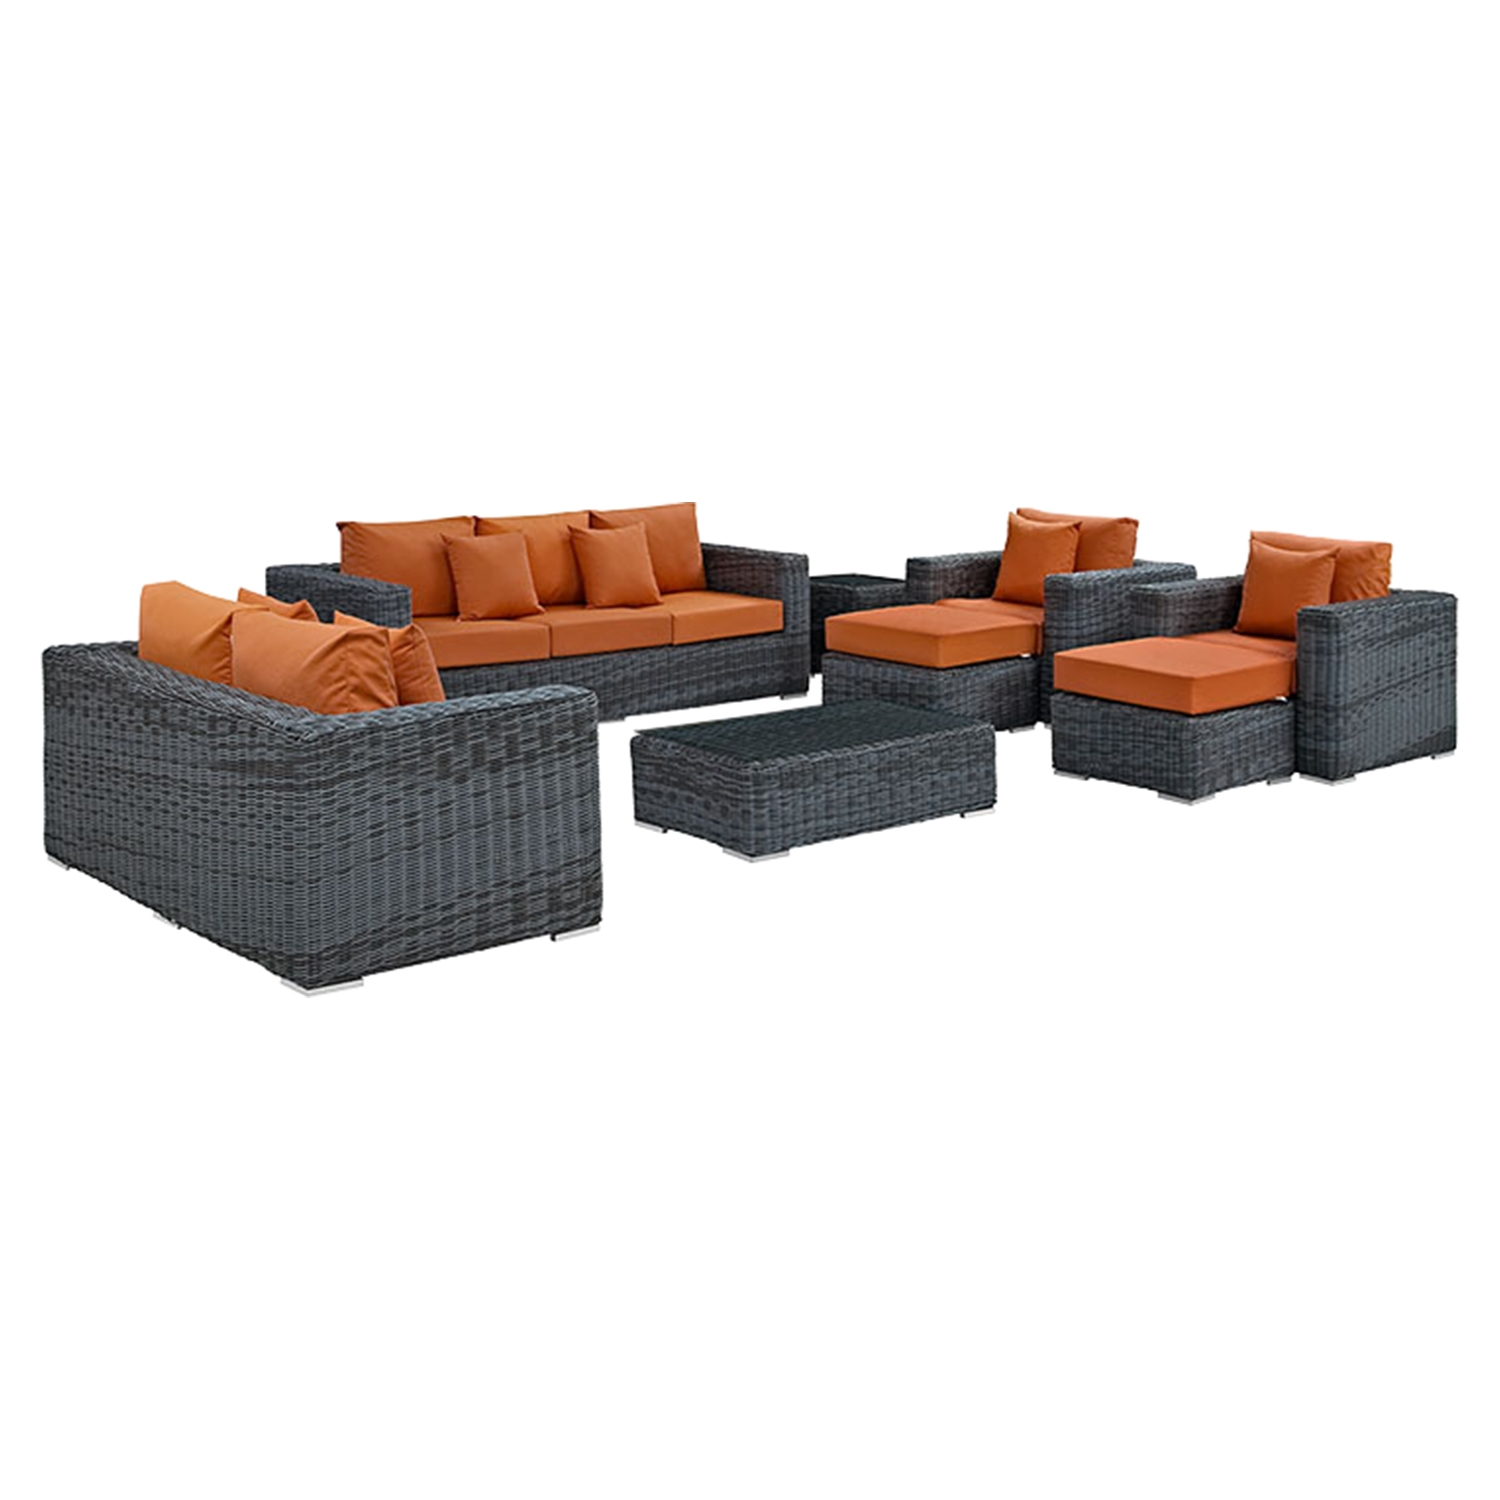 Summon 9 Pieces Outdoor Patio Sectional Sofa Set - Sunbrella Canvas Tuscan - EEI-1895-GRY-TUS-SET